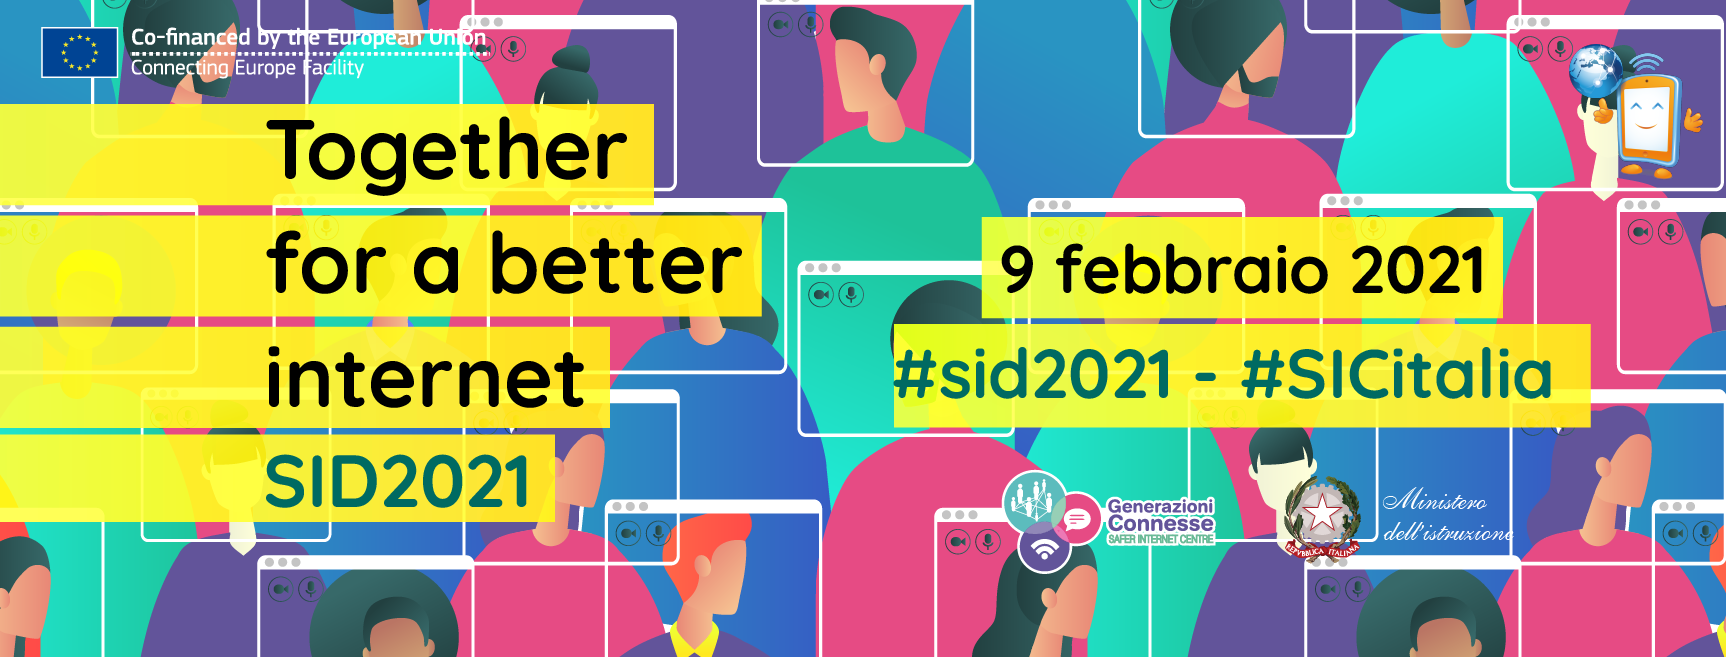 SID - Safer Internet Day 2021